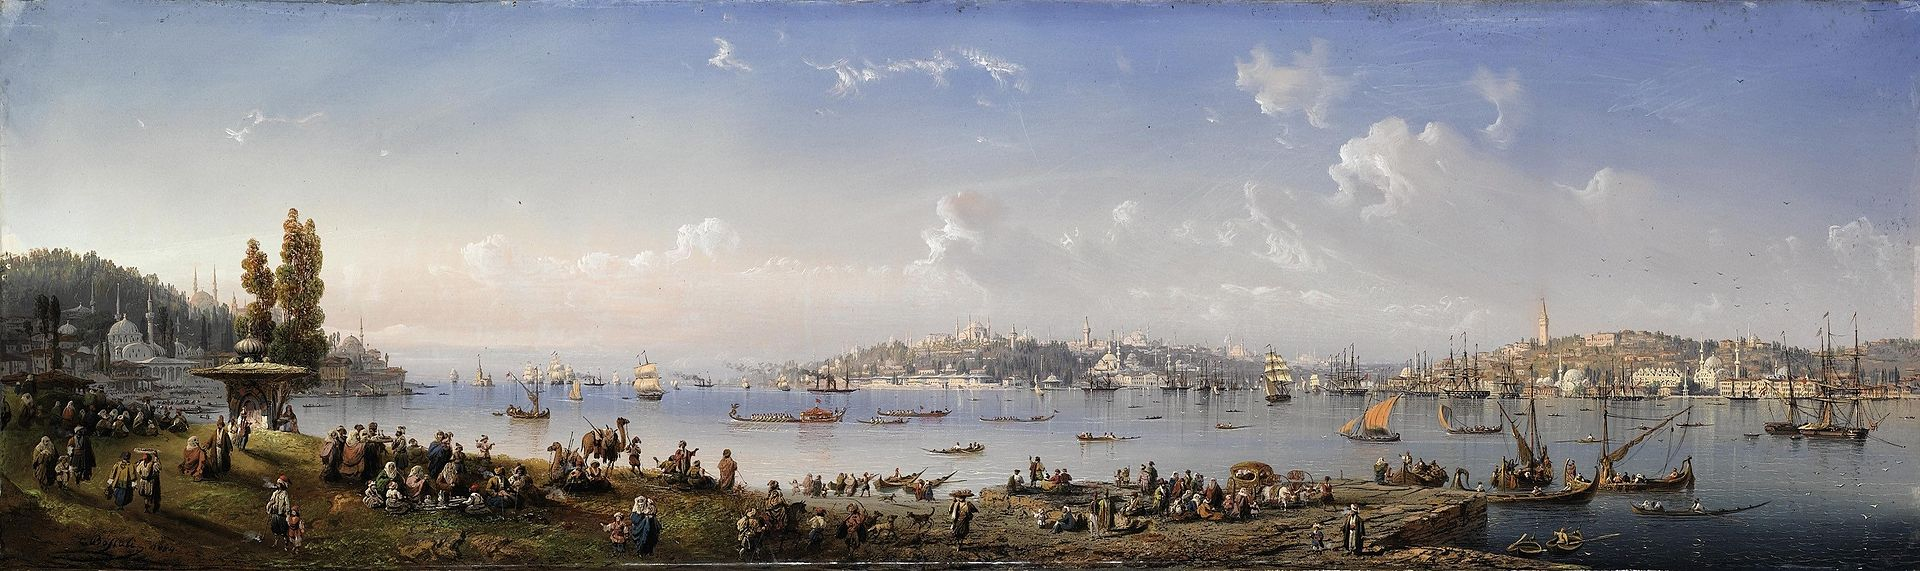 Carlo_Bossoli_-_A_panorama_of_Constantinople_from_Uskudar_(1854).jpg